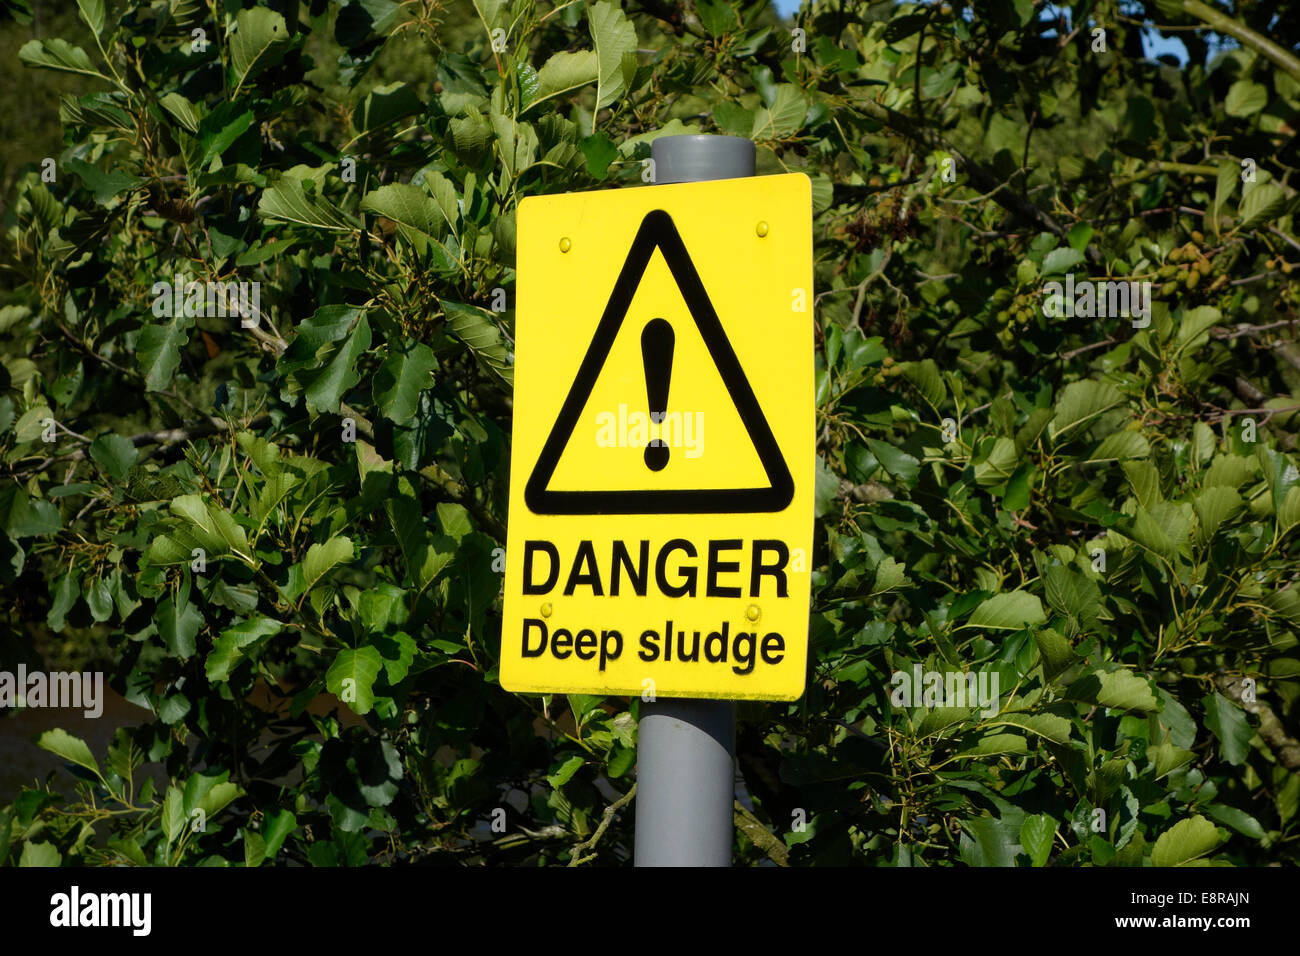 Danger Deep Sludge Warning Sign, UK - Stock Image